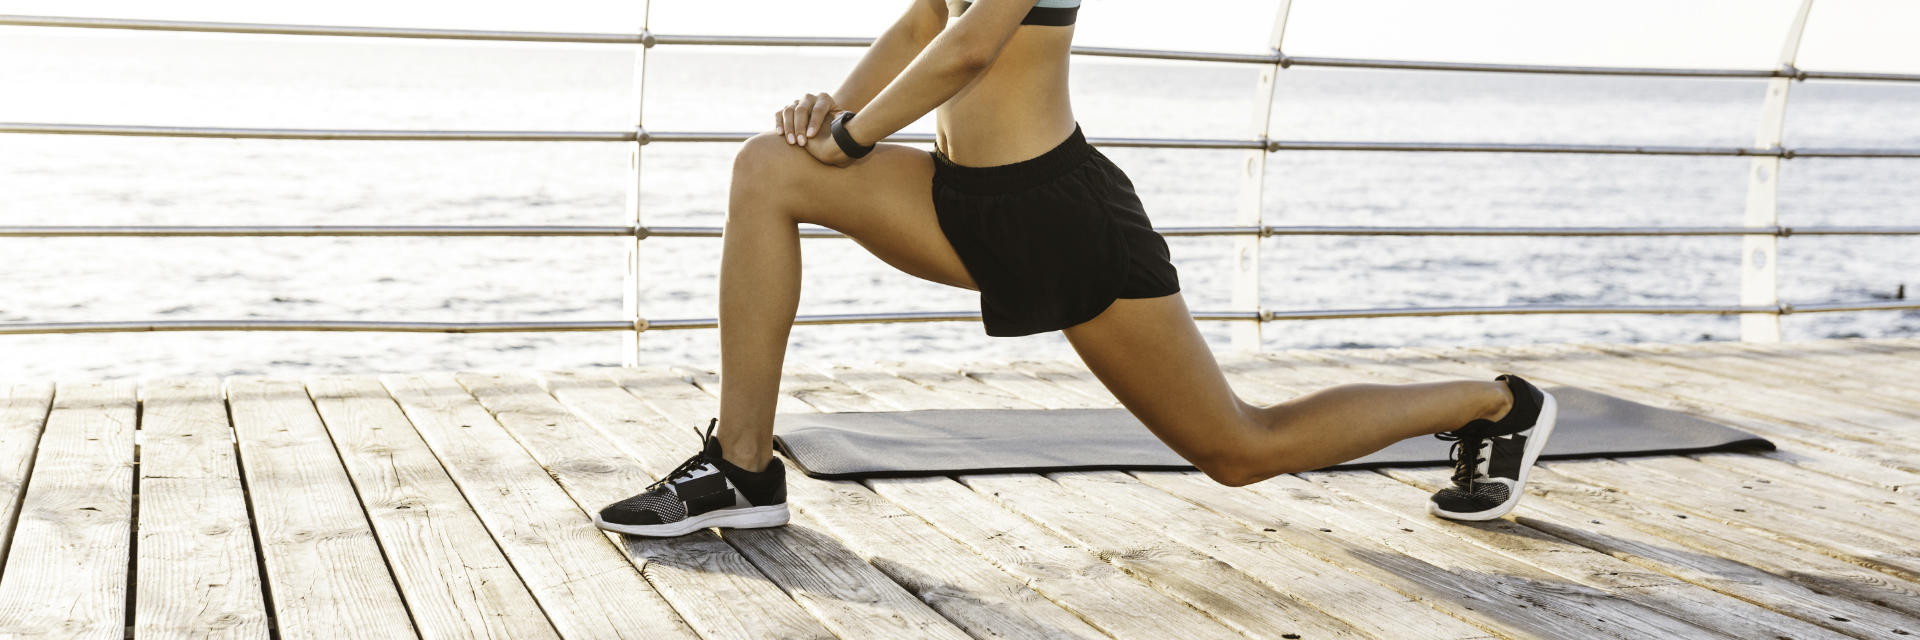 A fit sporty woman doing lunges on the pier.